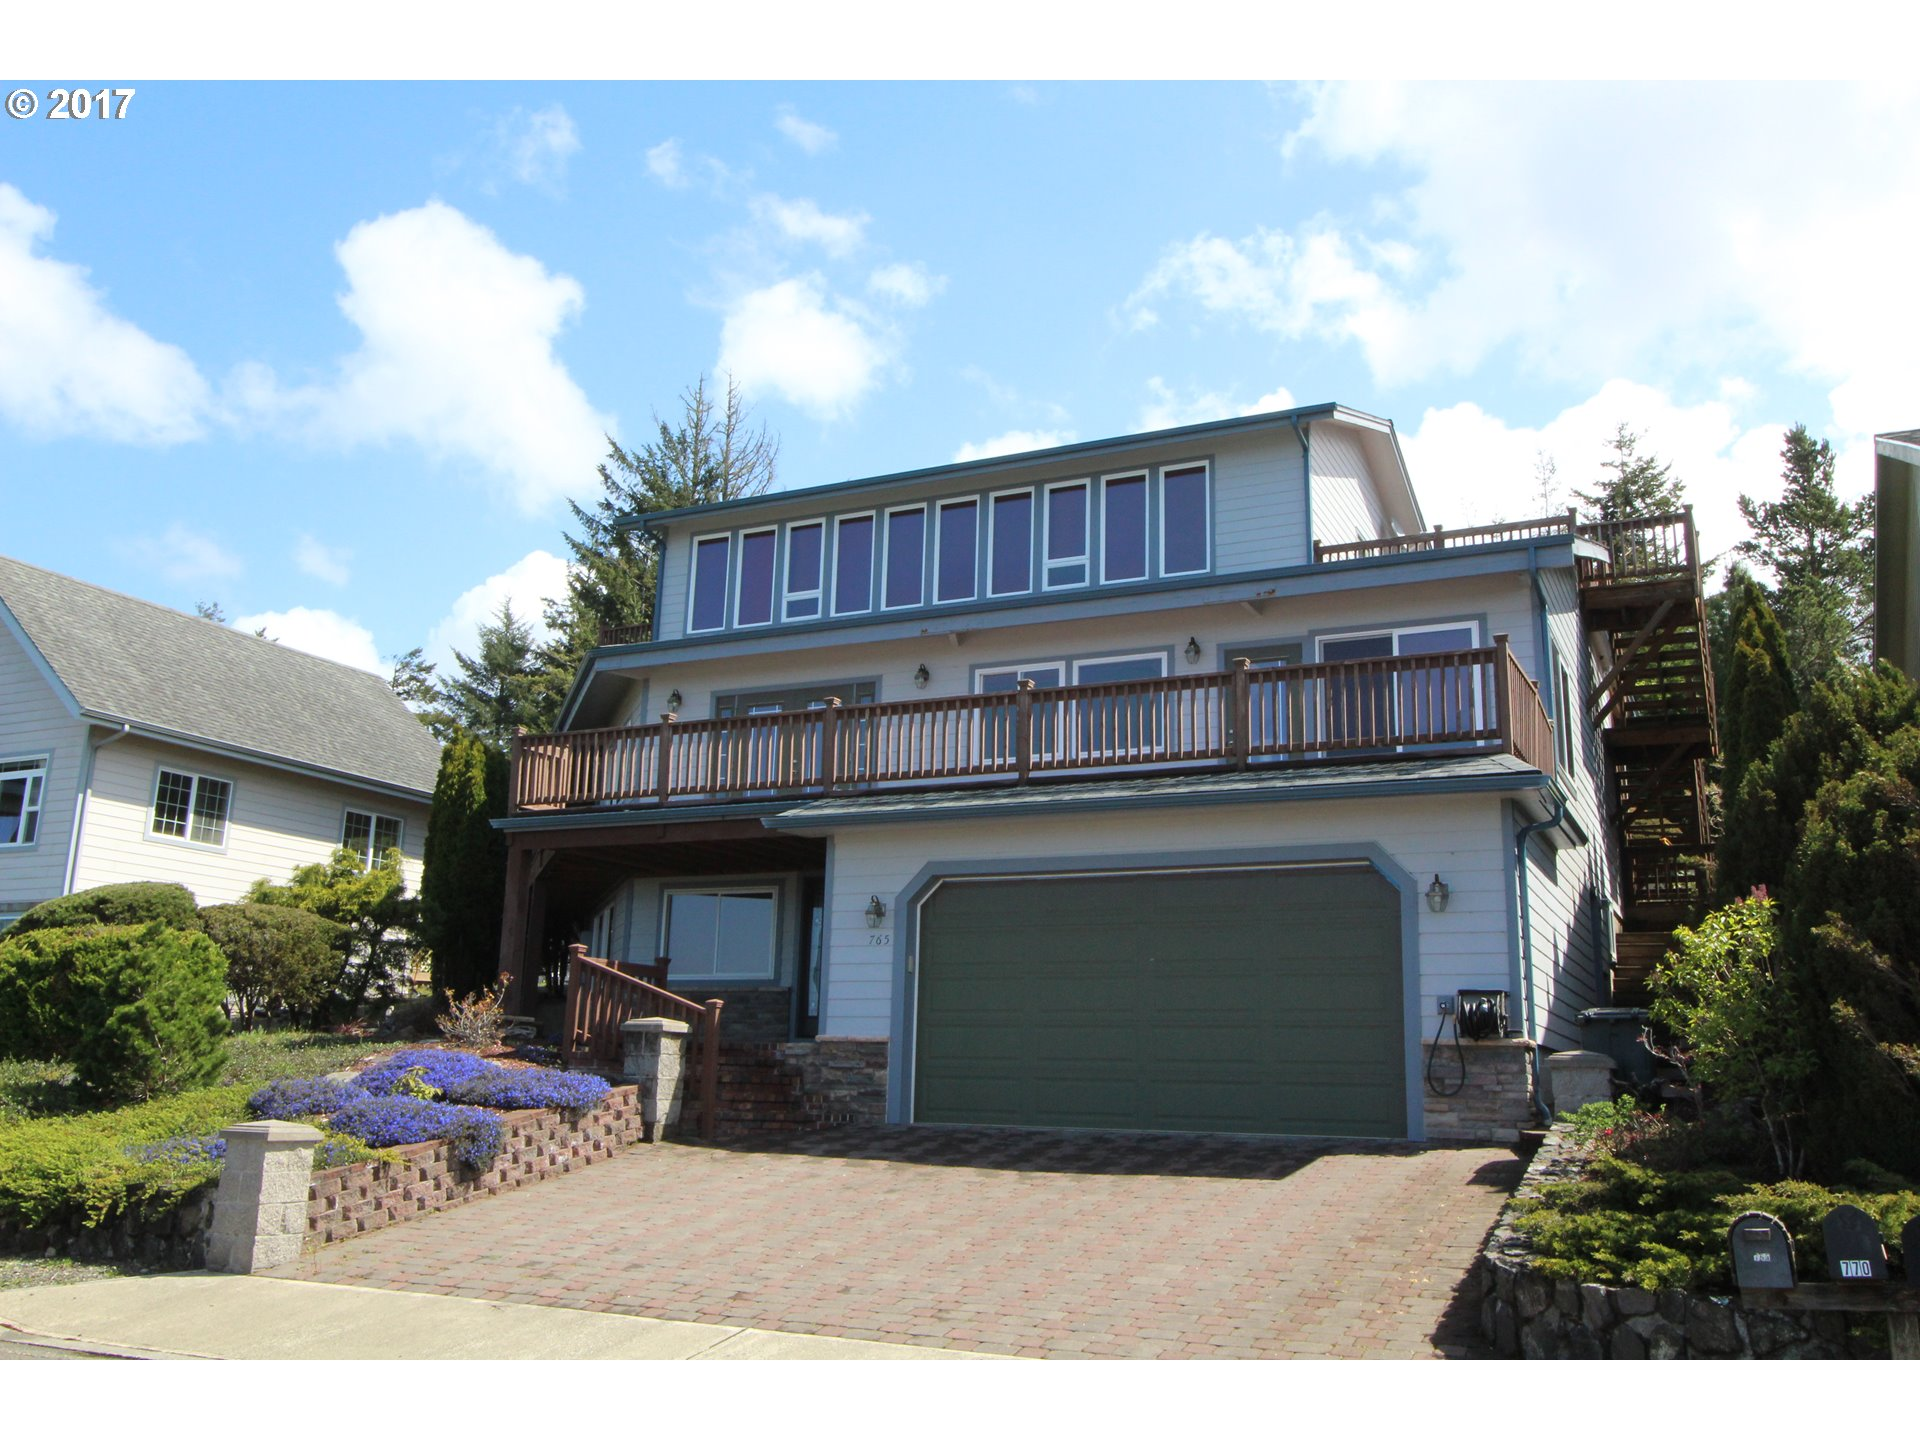 765 PREFONTAINE DR, Coos Bay, OR 97420